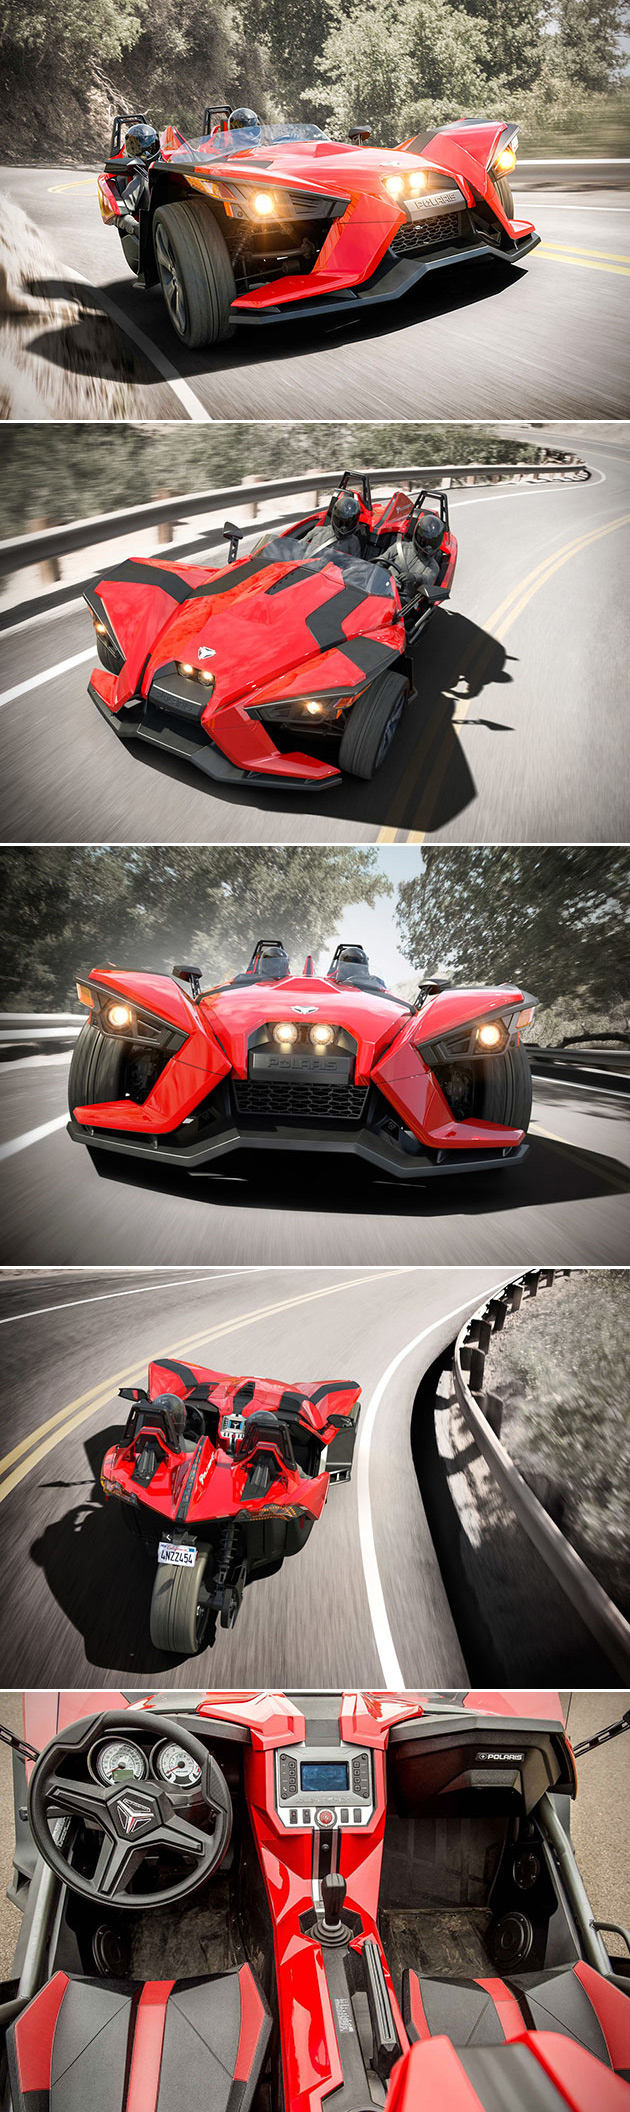 Polaris Slingshot: When Three-Wheeled Motorcycle Meets Go-Kart